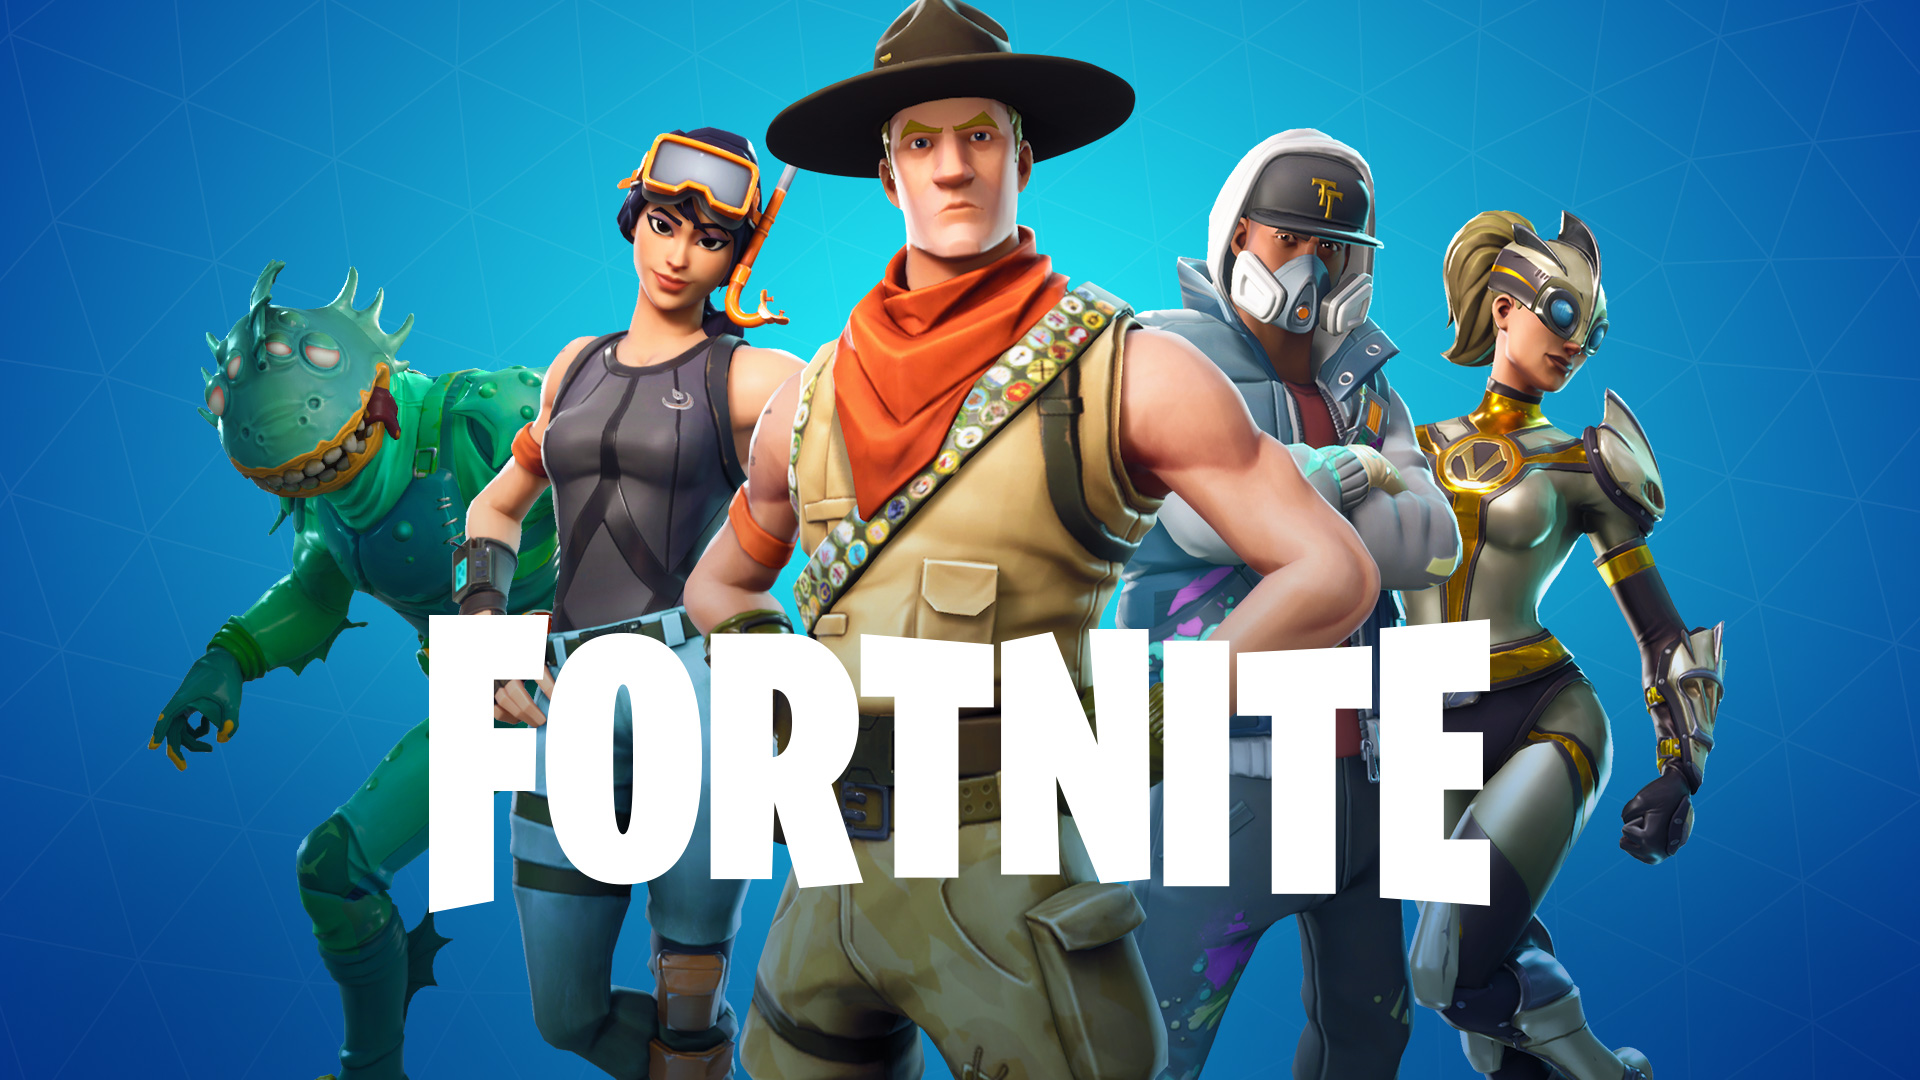 Do you need Xbox Live Gold to play Fortnite? 1